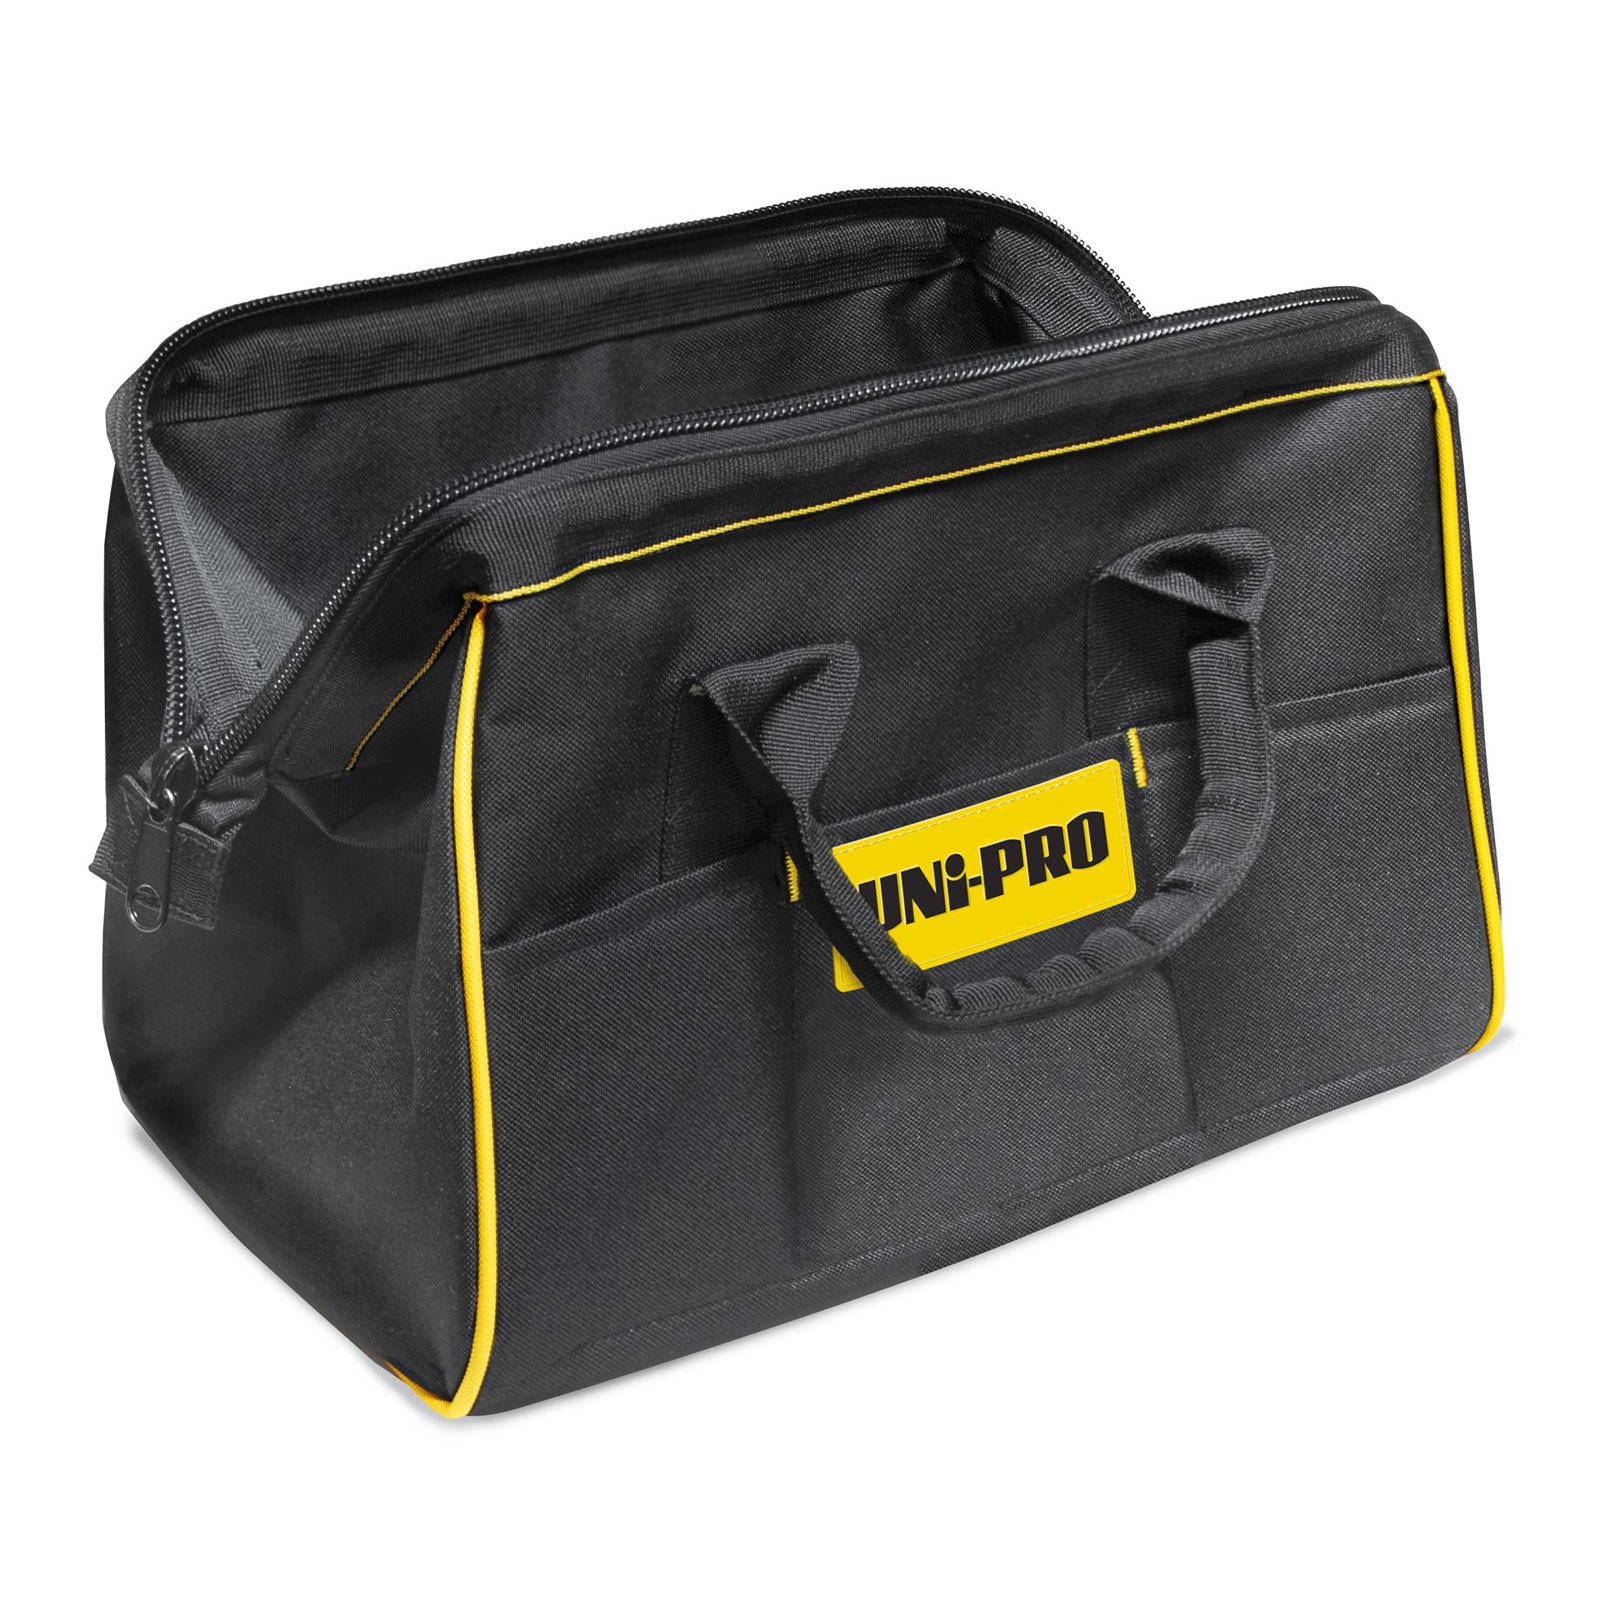 UNi-PRO Canvas Painter's Kit Bag